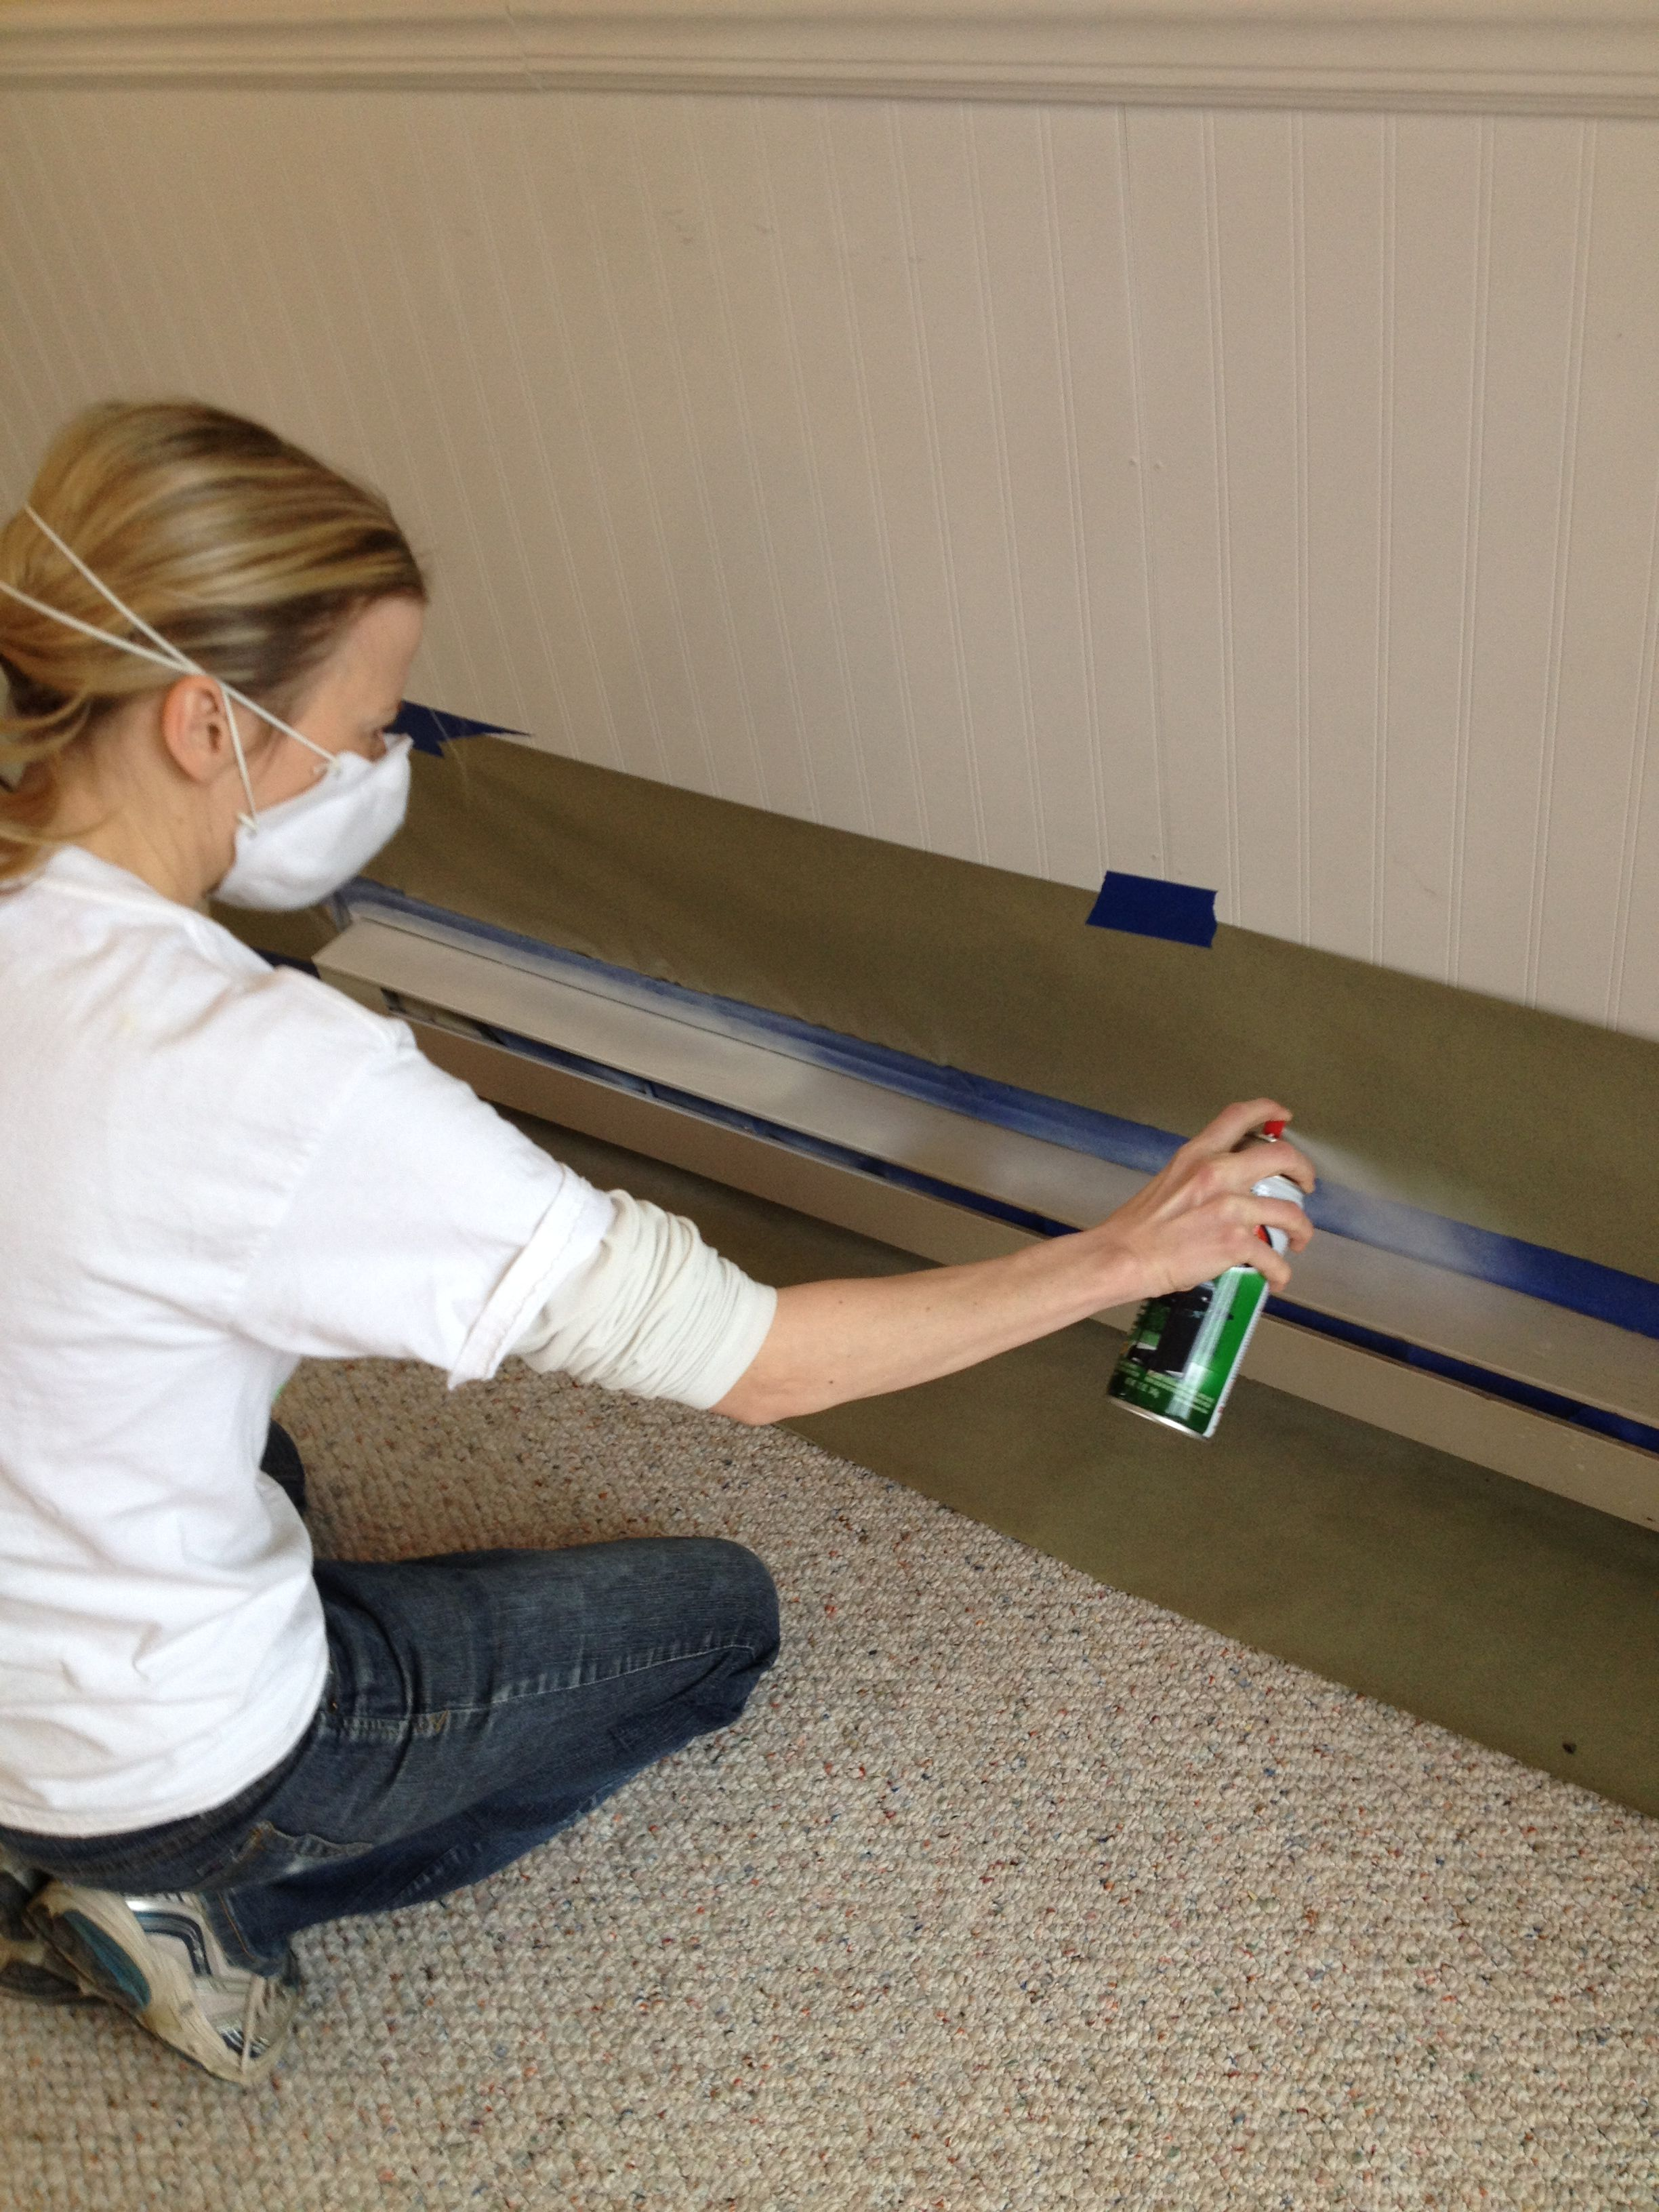 How To Paint Baseboard Heaters Like A Pro Saves A Fortune